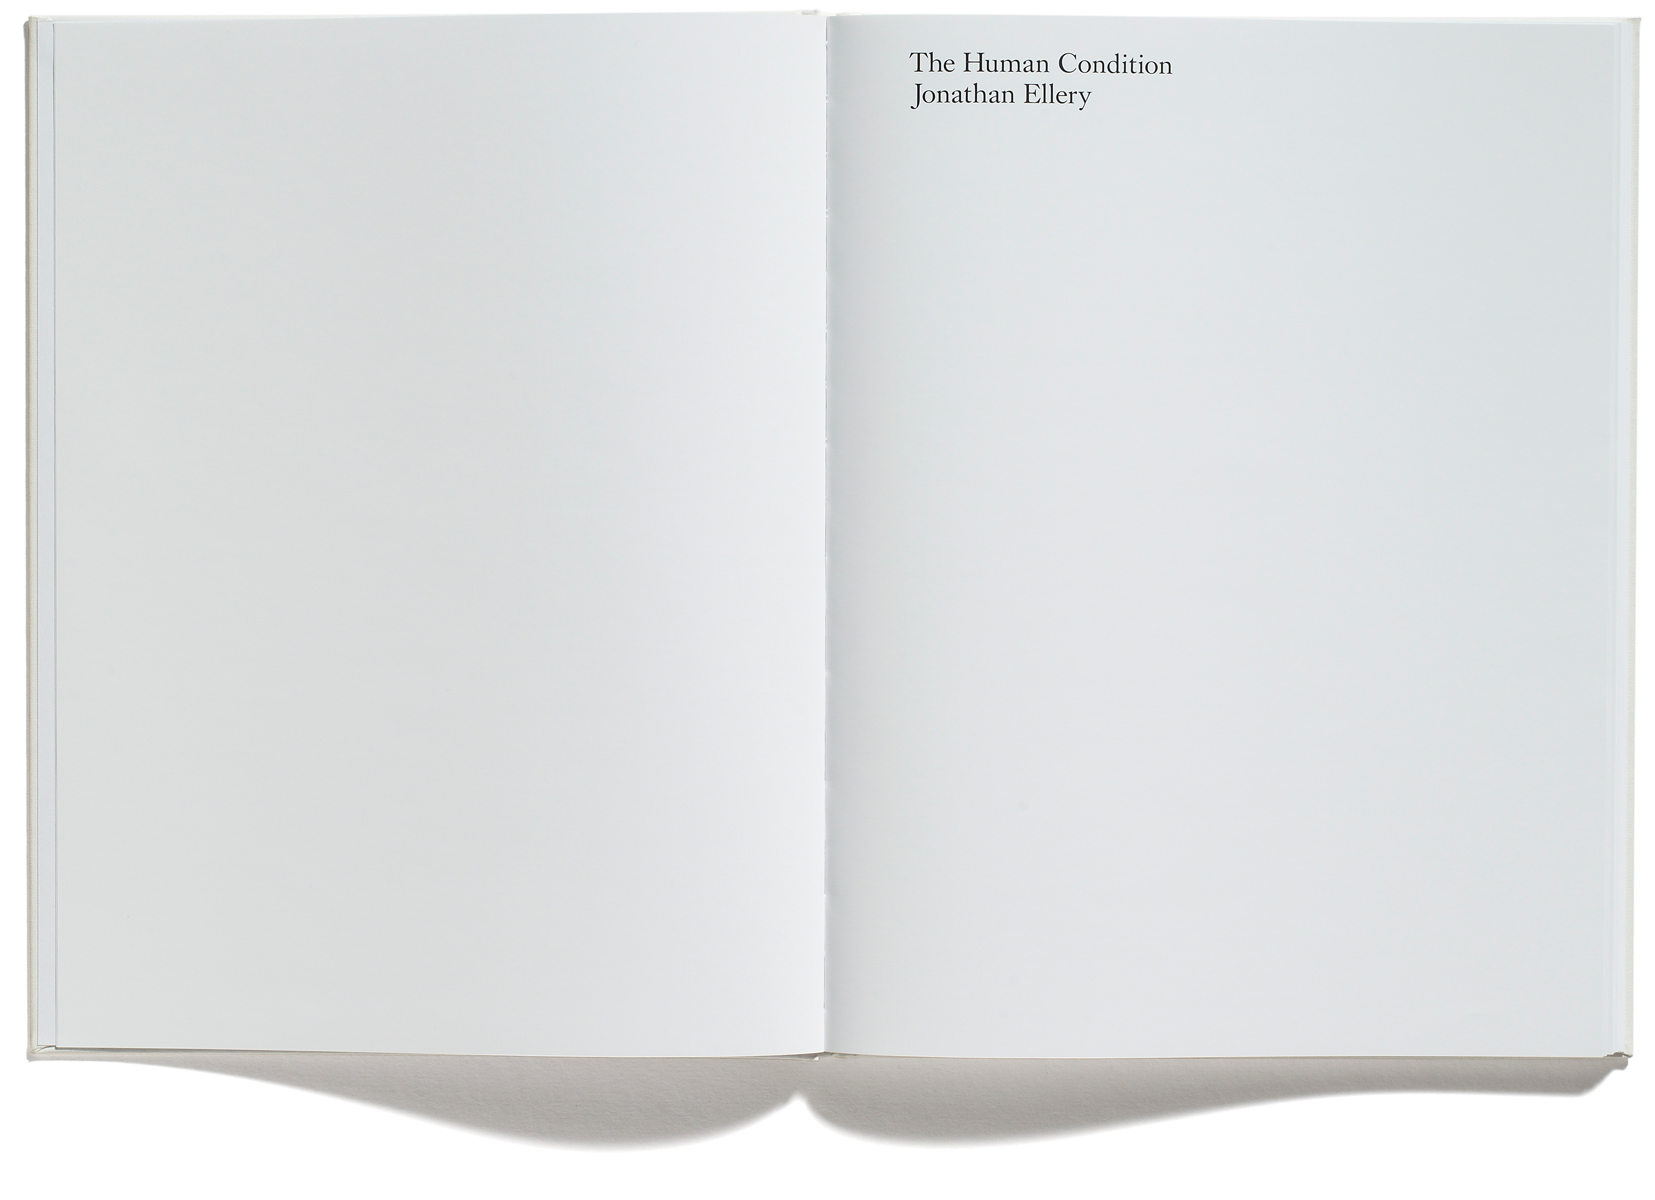 Browns Editions, Jonathan Ellery, The Human Condition, designed by Browns Design